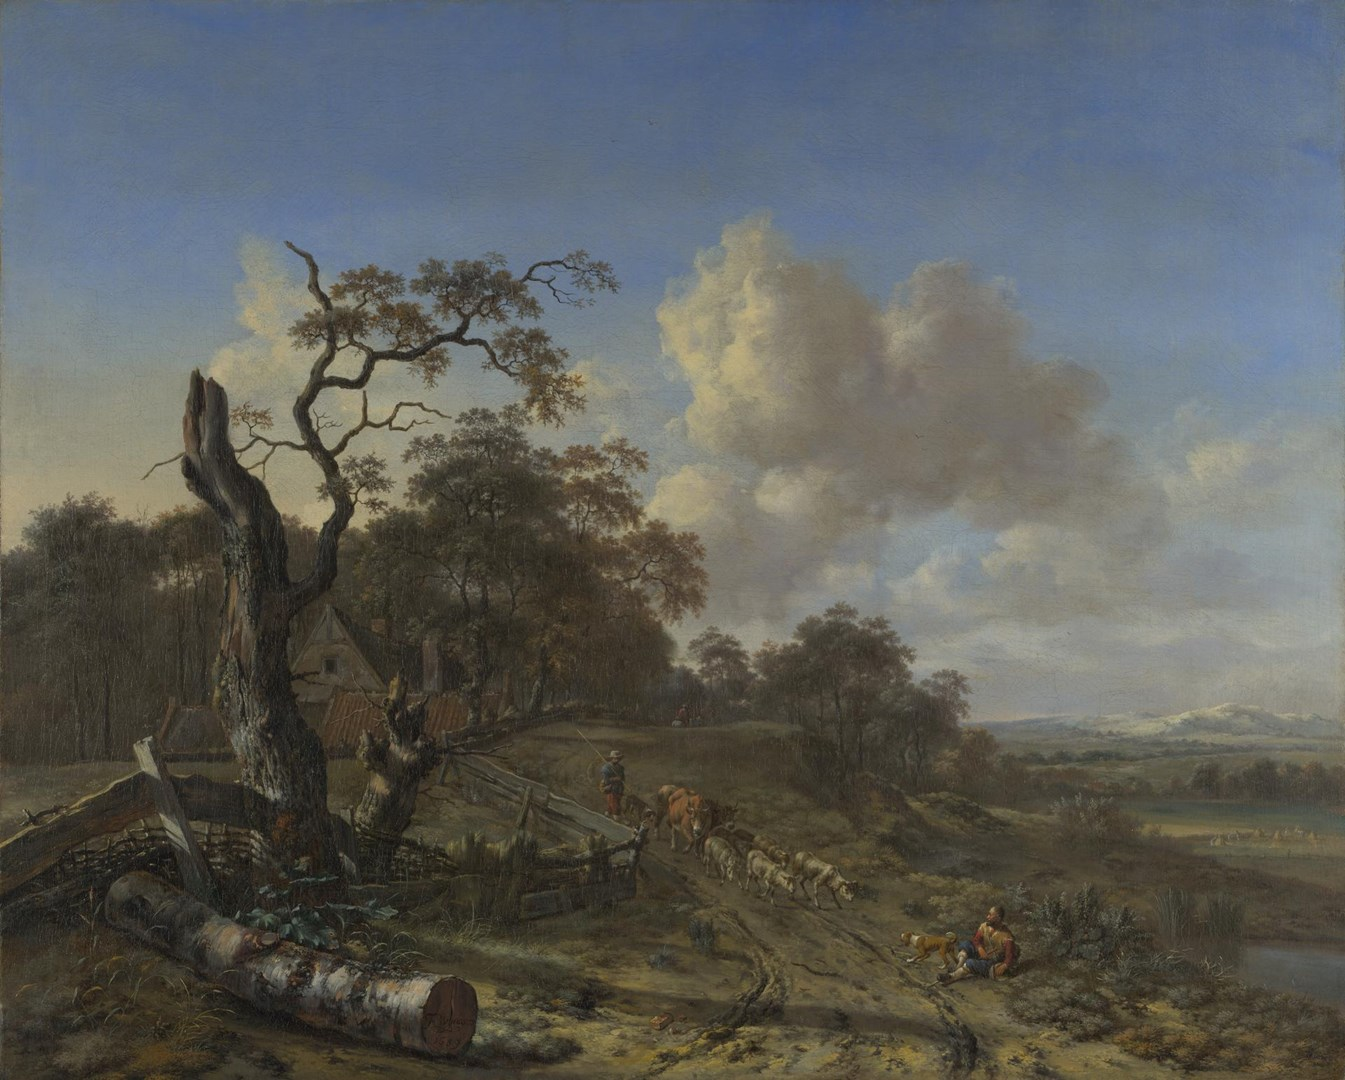 A Landscape with a Dead Tree by Jan Wijnants